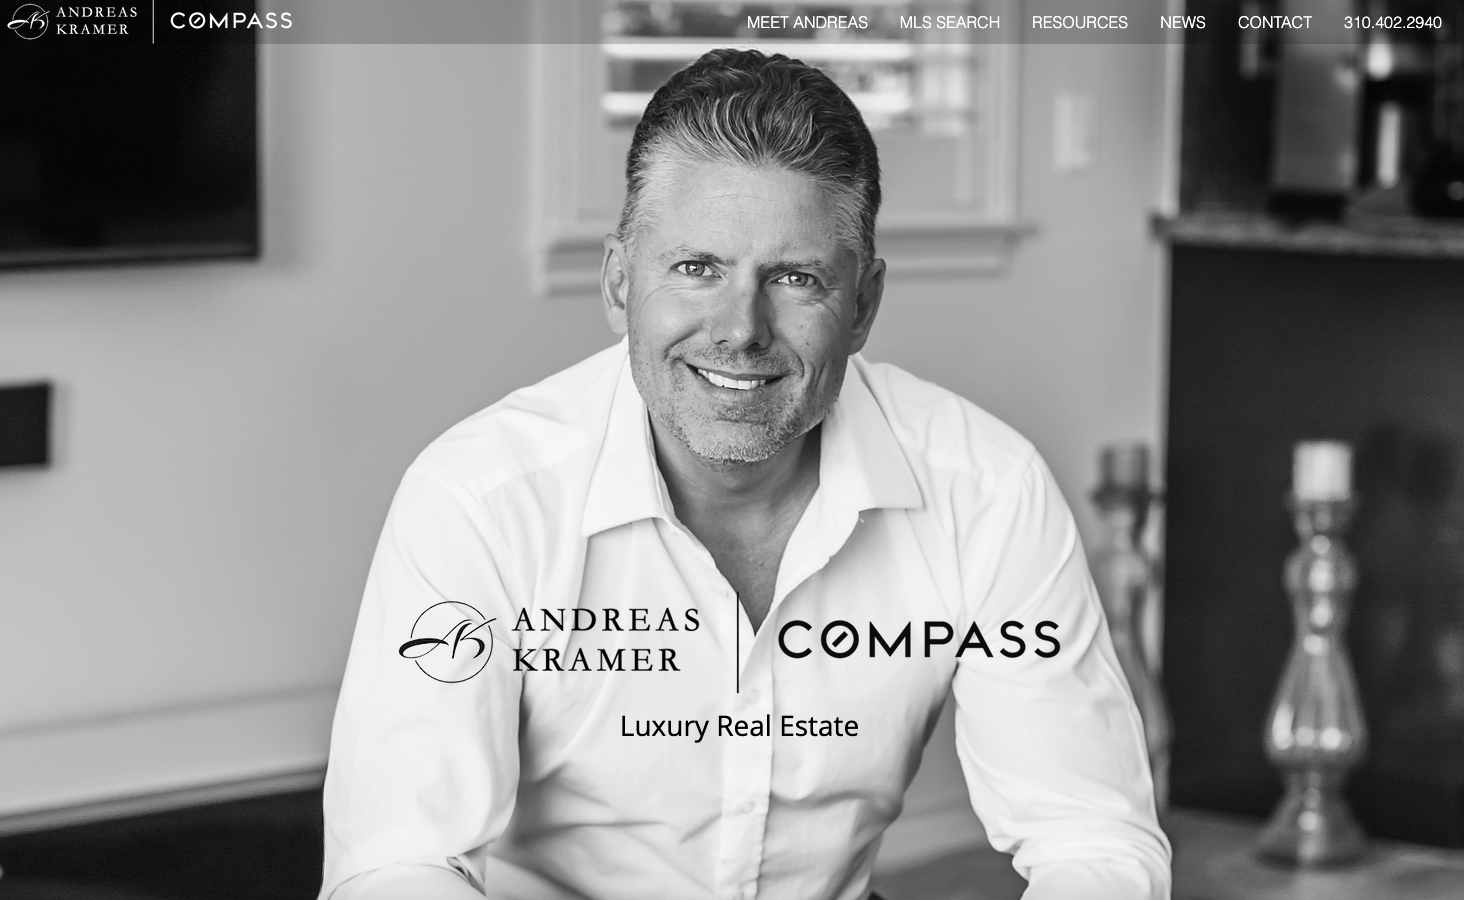 Andreas Kramer - Real Estate